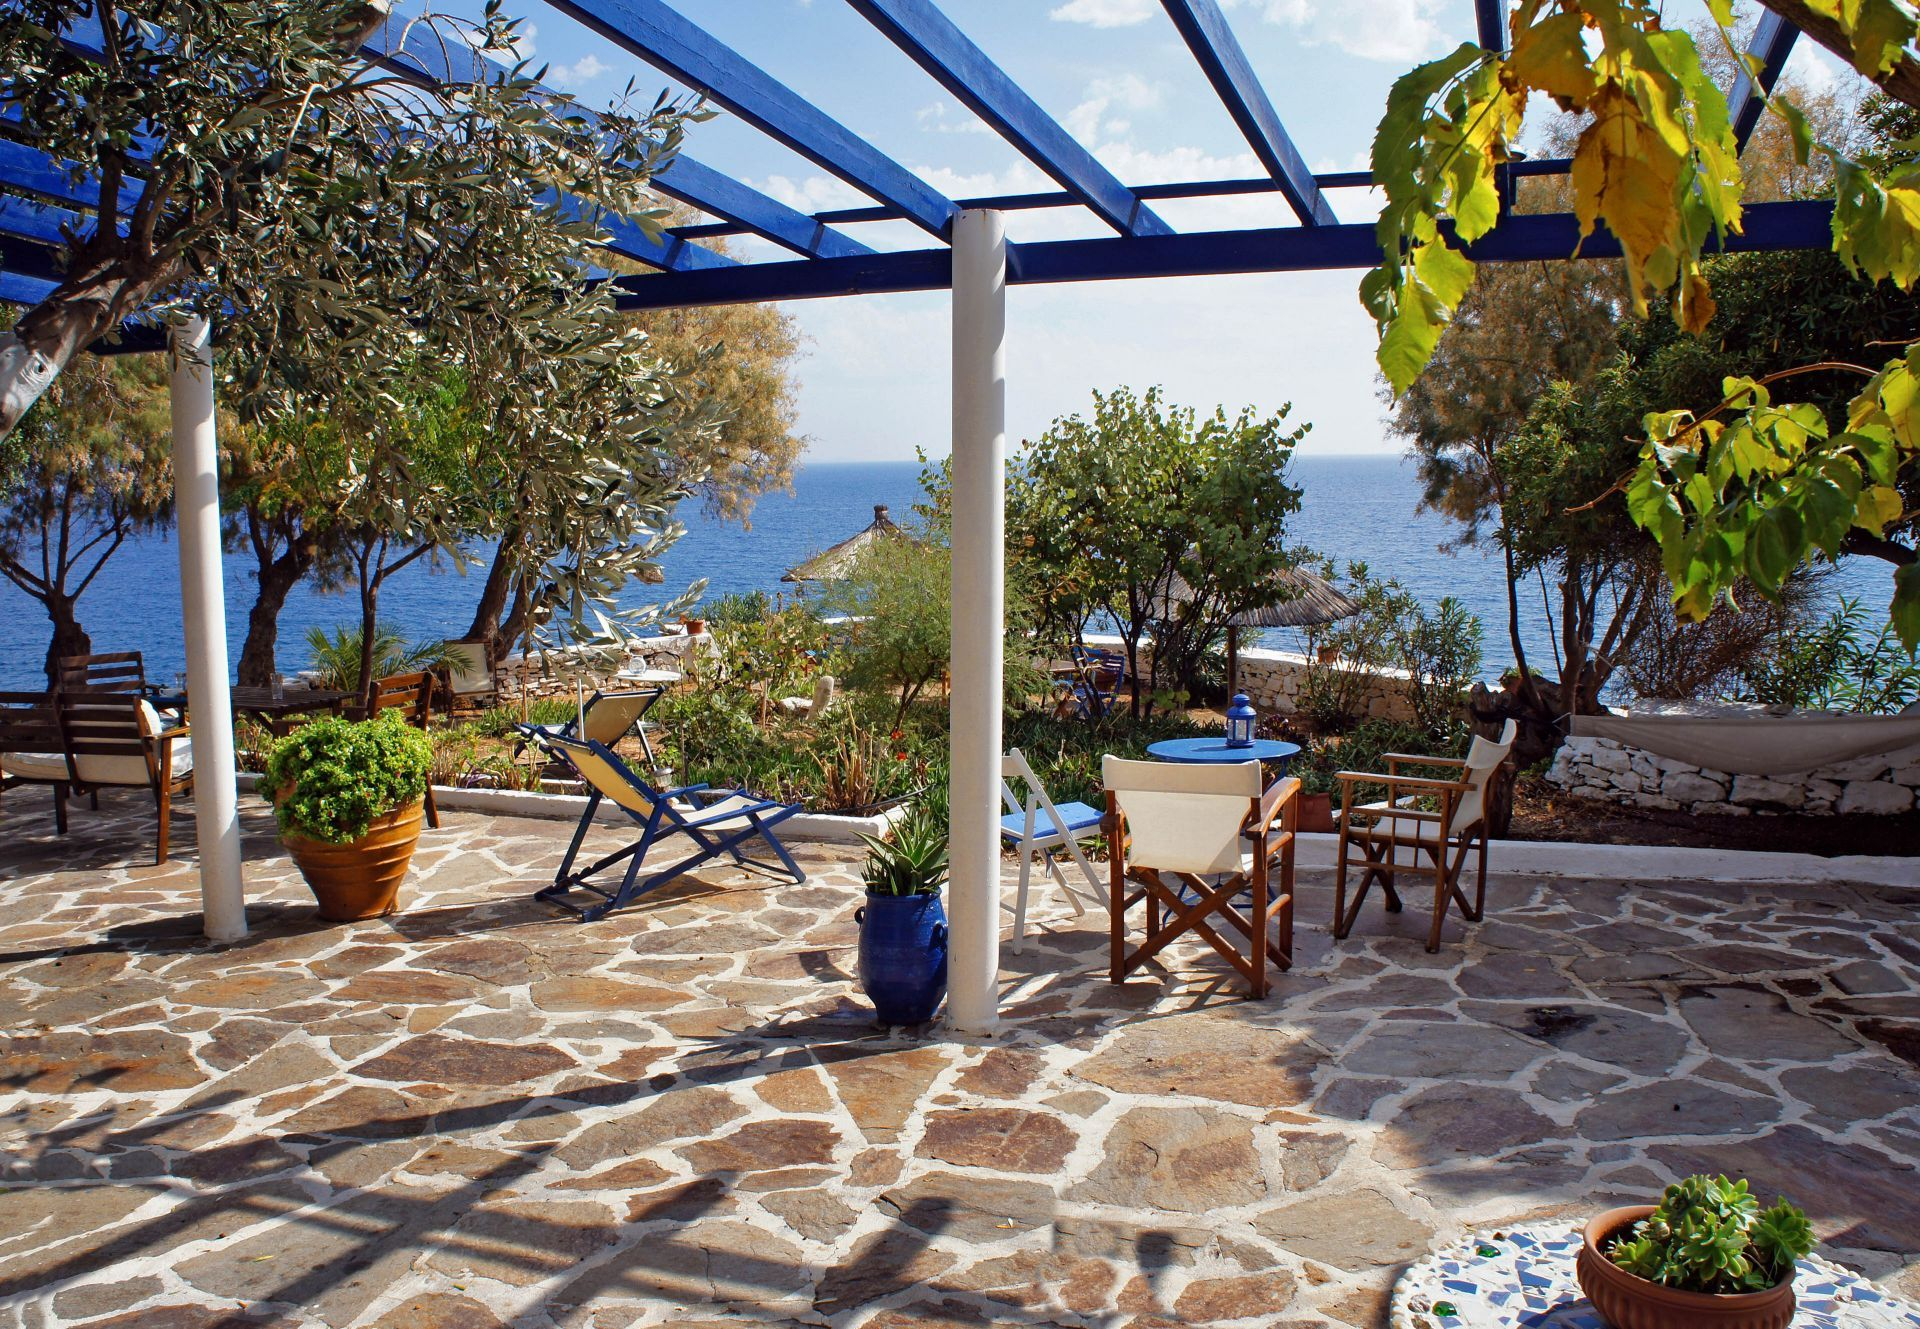 Accommodation and hotels in Ikaria